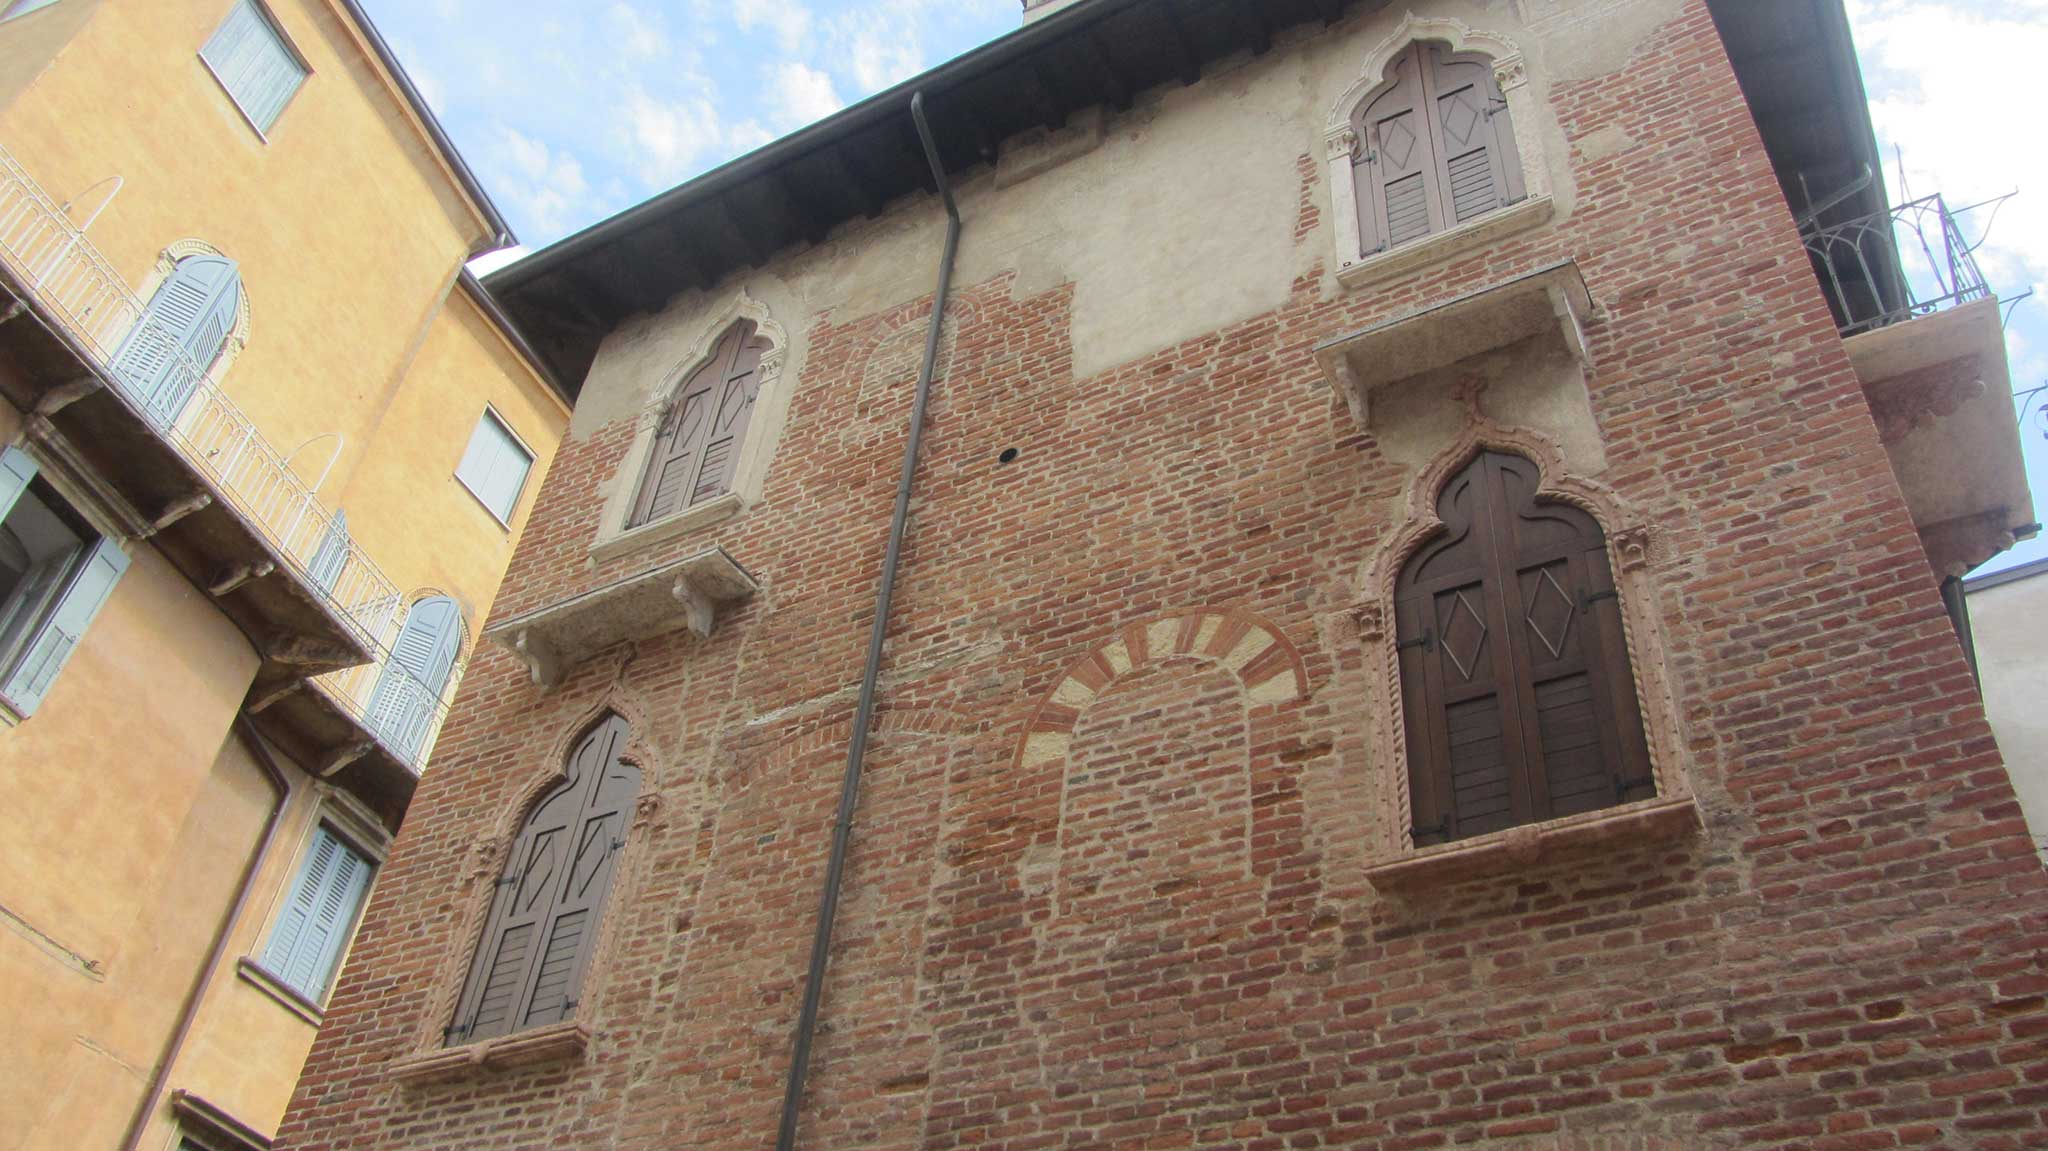 Santa Felicita on Verona audio tour A stroll through the city of Romeo and Juliet